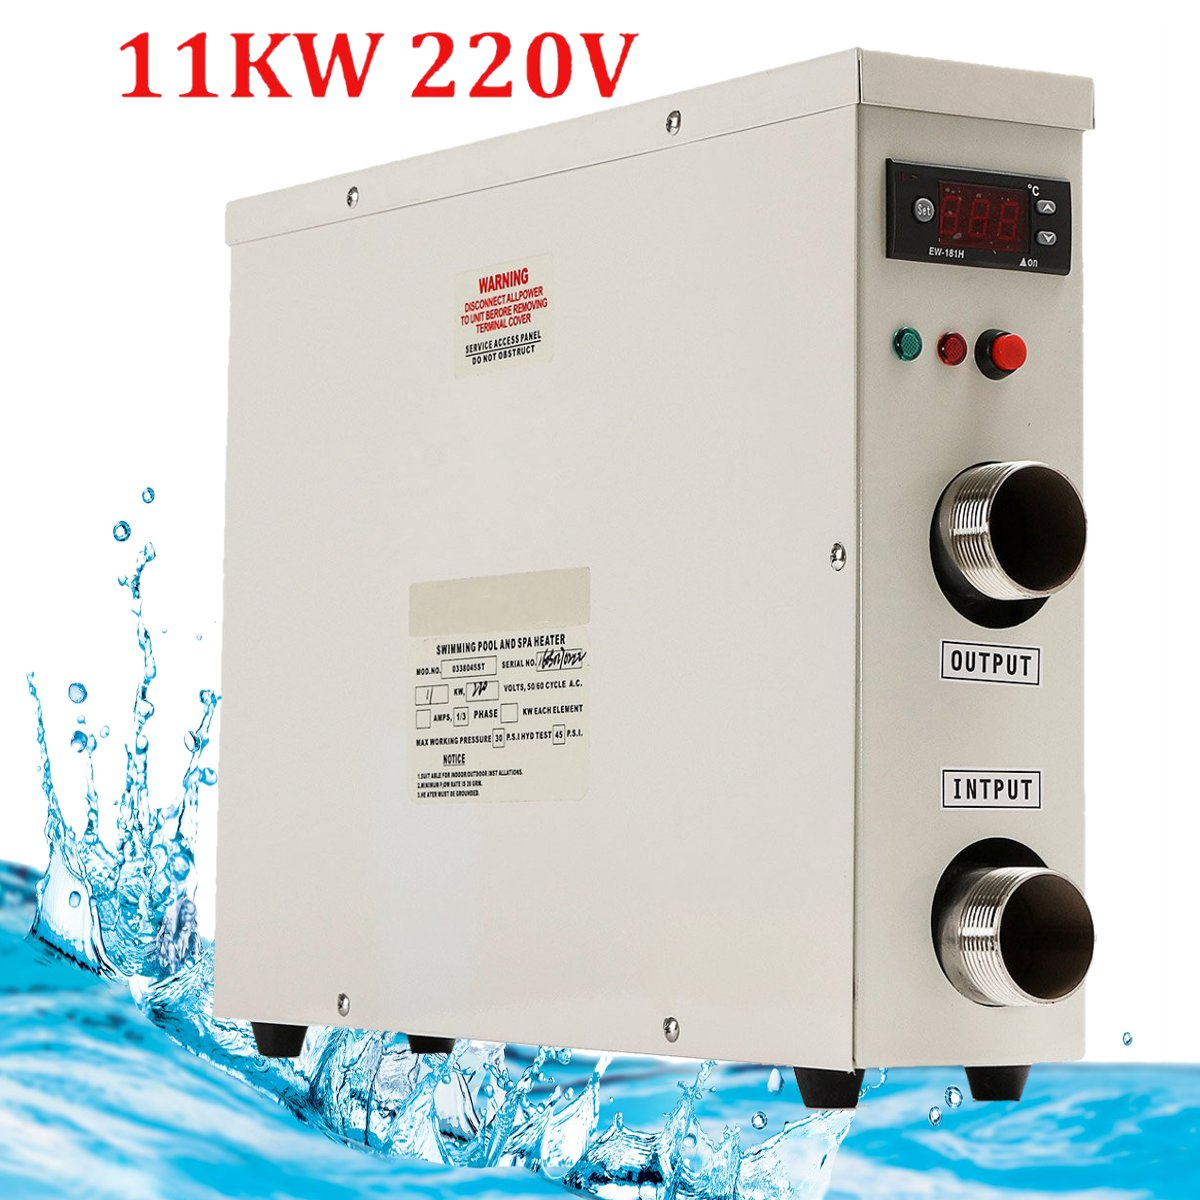 1PC 11KW 220V AC Electric Digital Water Heater Thermostat For Swimming Pool SPA Hot Tub Bath Water Heating